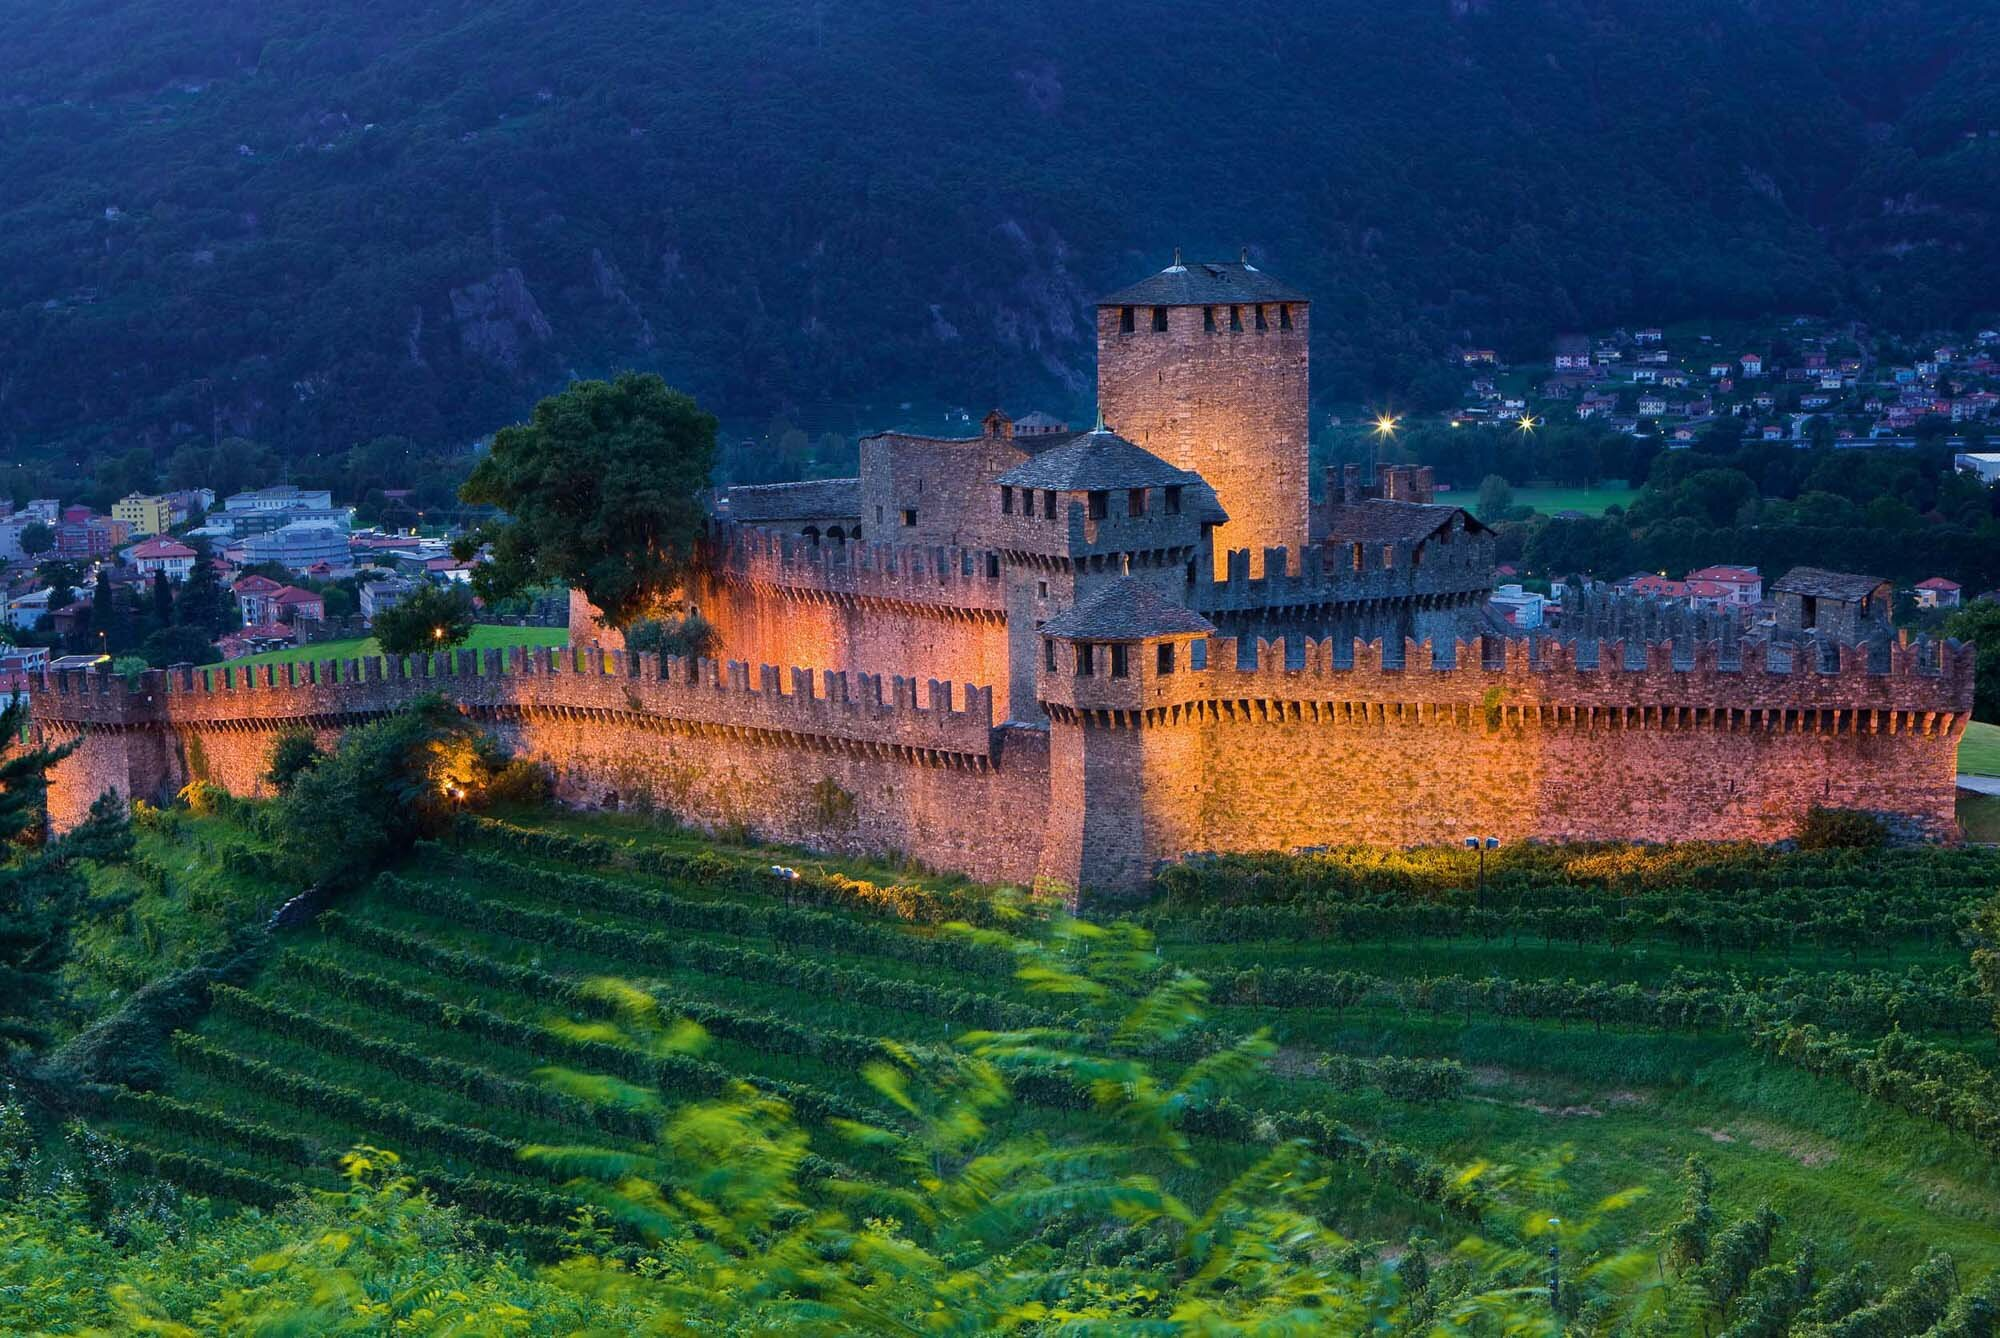 Bellinzona by night, Canton Ticino. The Montebello castle is now part of the UNESCO world cultural heritage. Copyright by: Switzerland Tourism